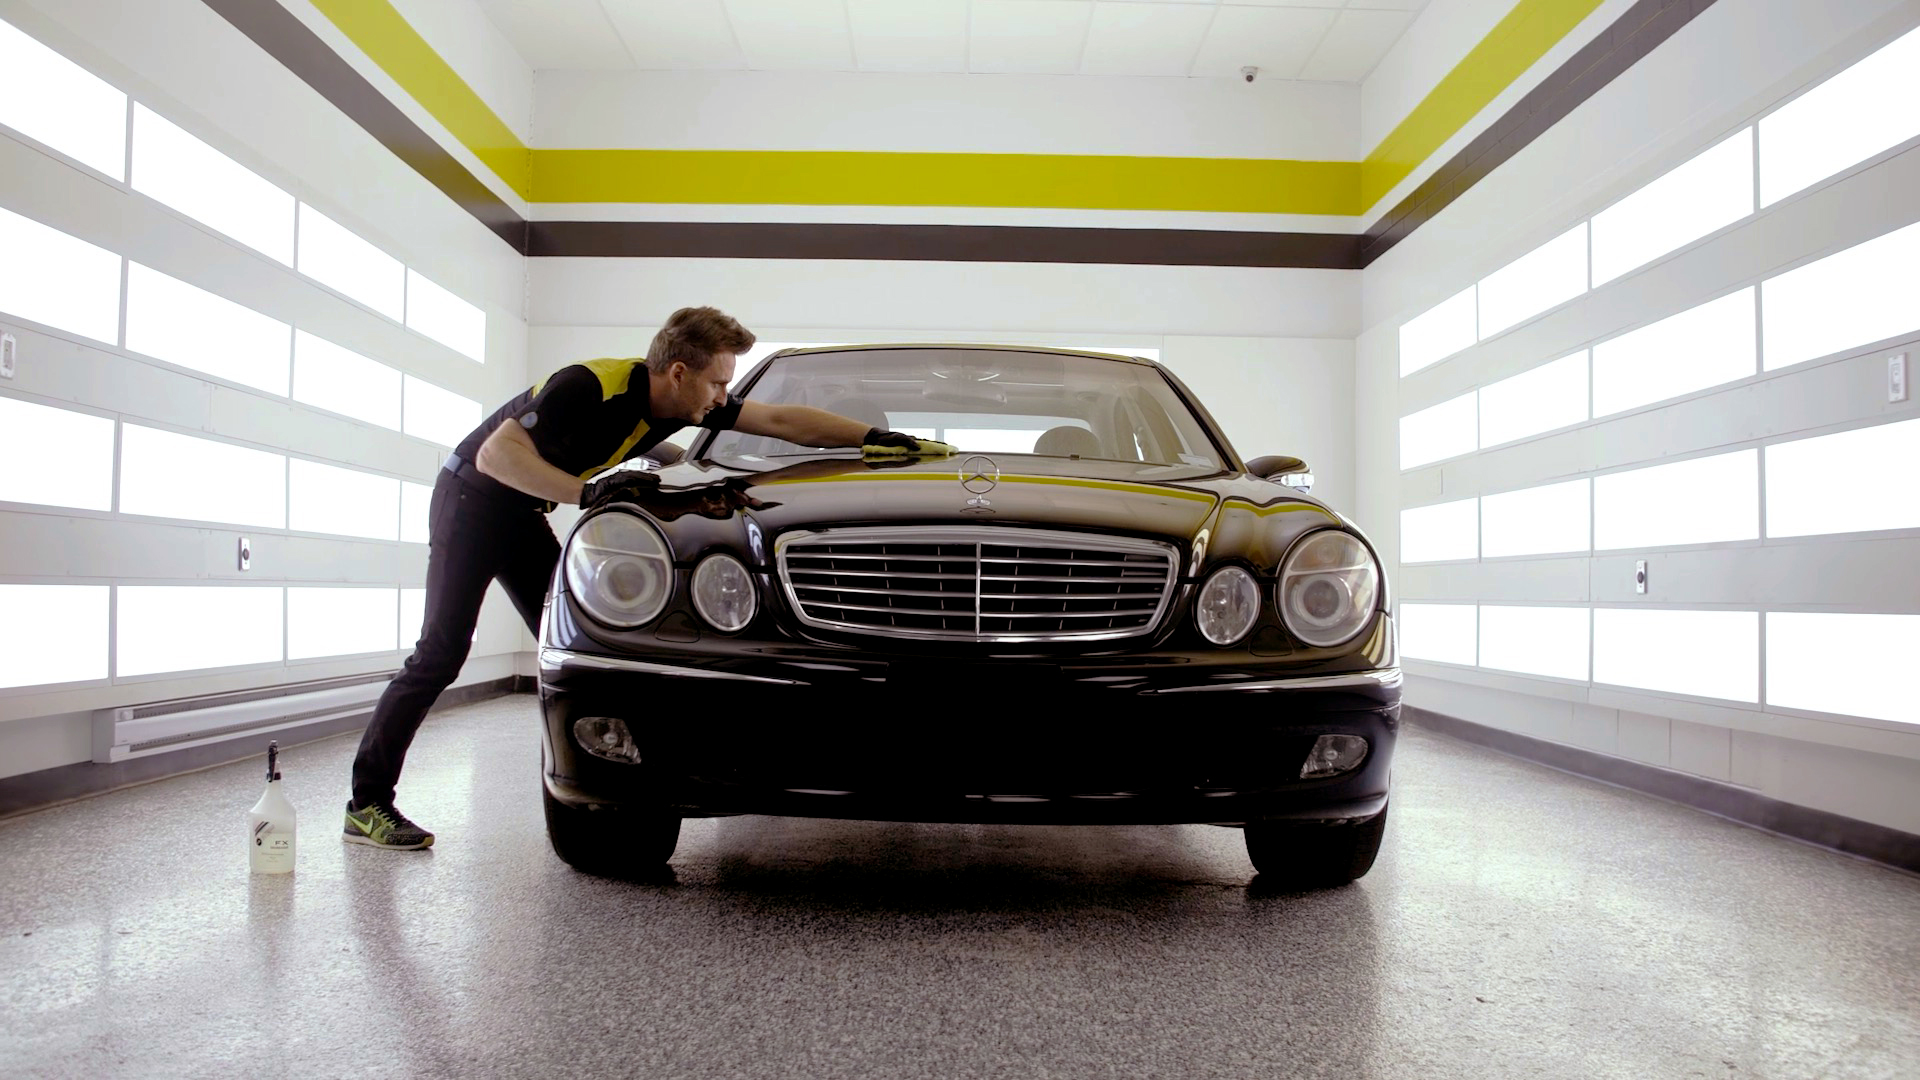 A RestorFX technician finishing the restoration of a shiny, brilliant black Mercedes lit with dramatic wall lights